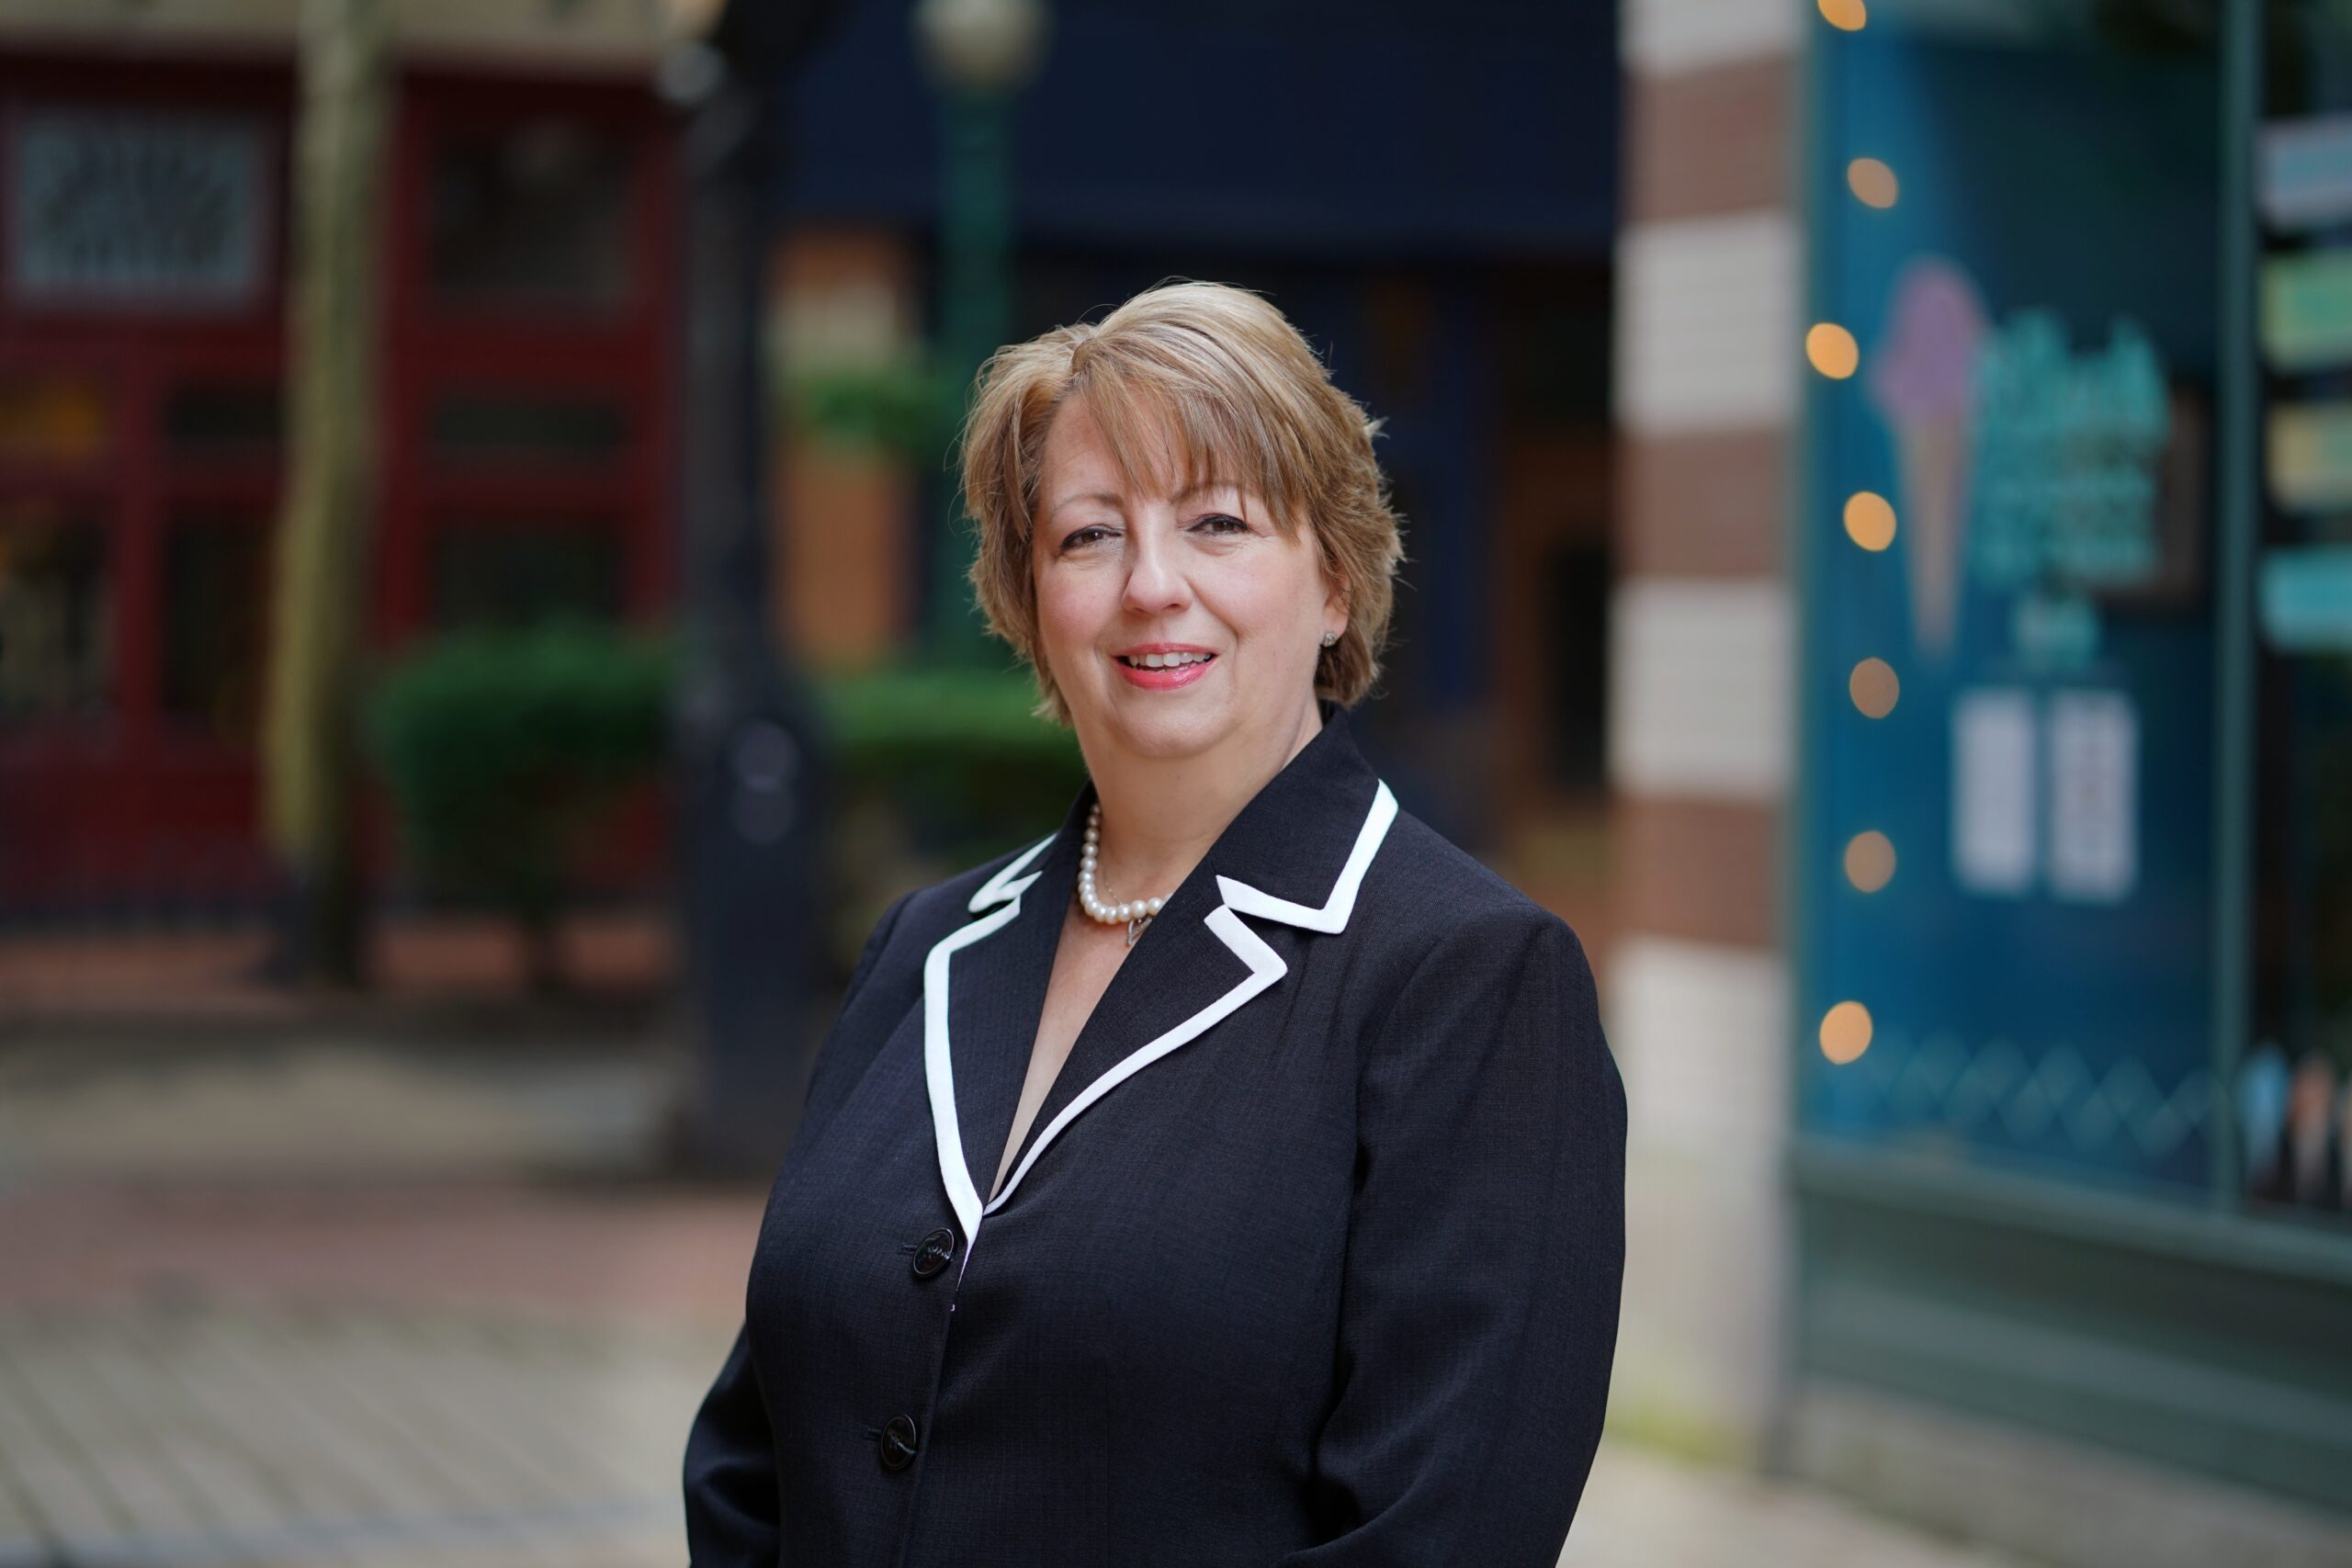 Headshot of Amy Daniel, CEO of Home Health & Hospice